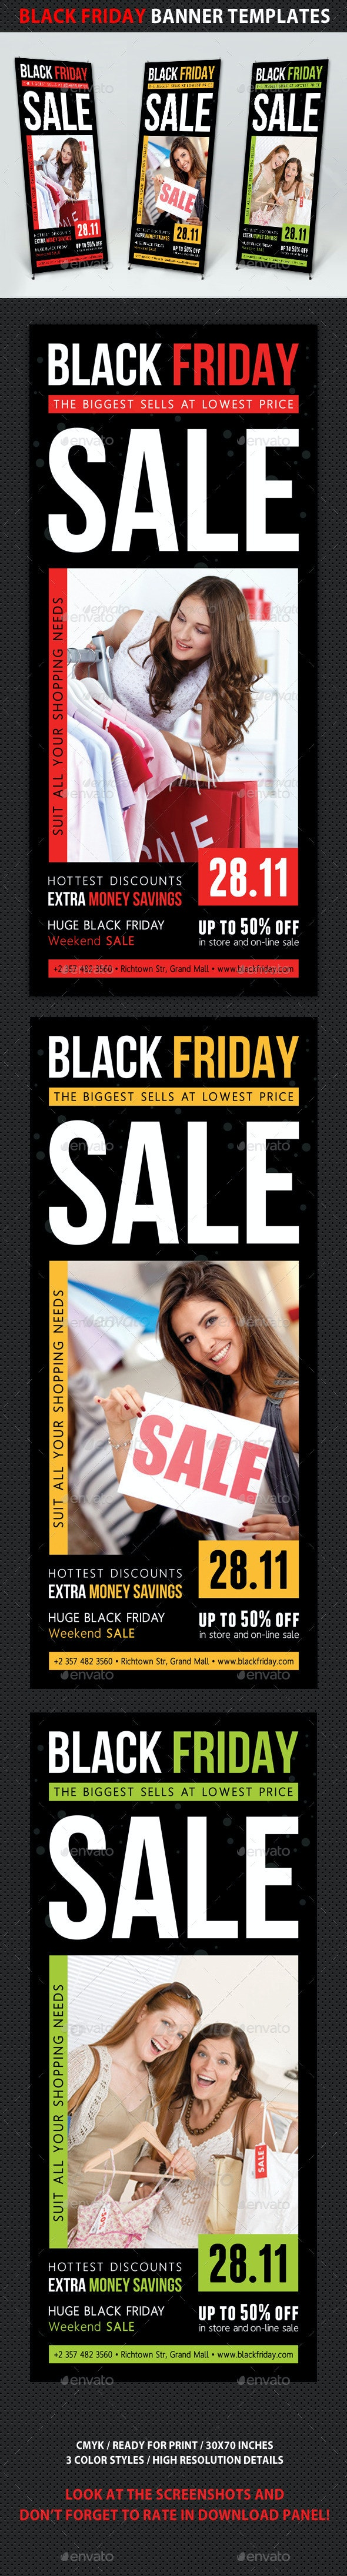 Black Friday Sale Banner Template V01 - Signage Print Templates